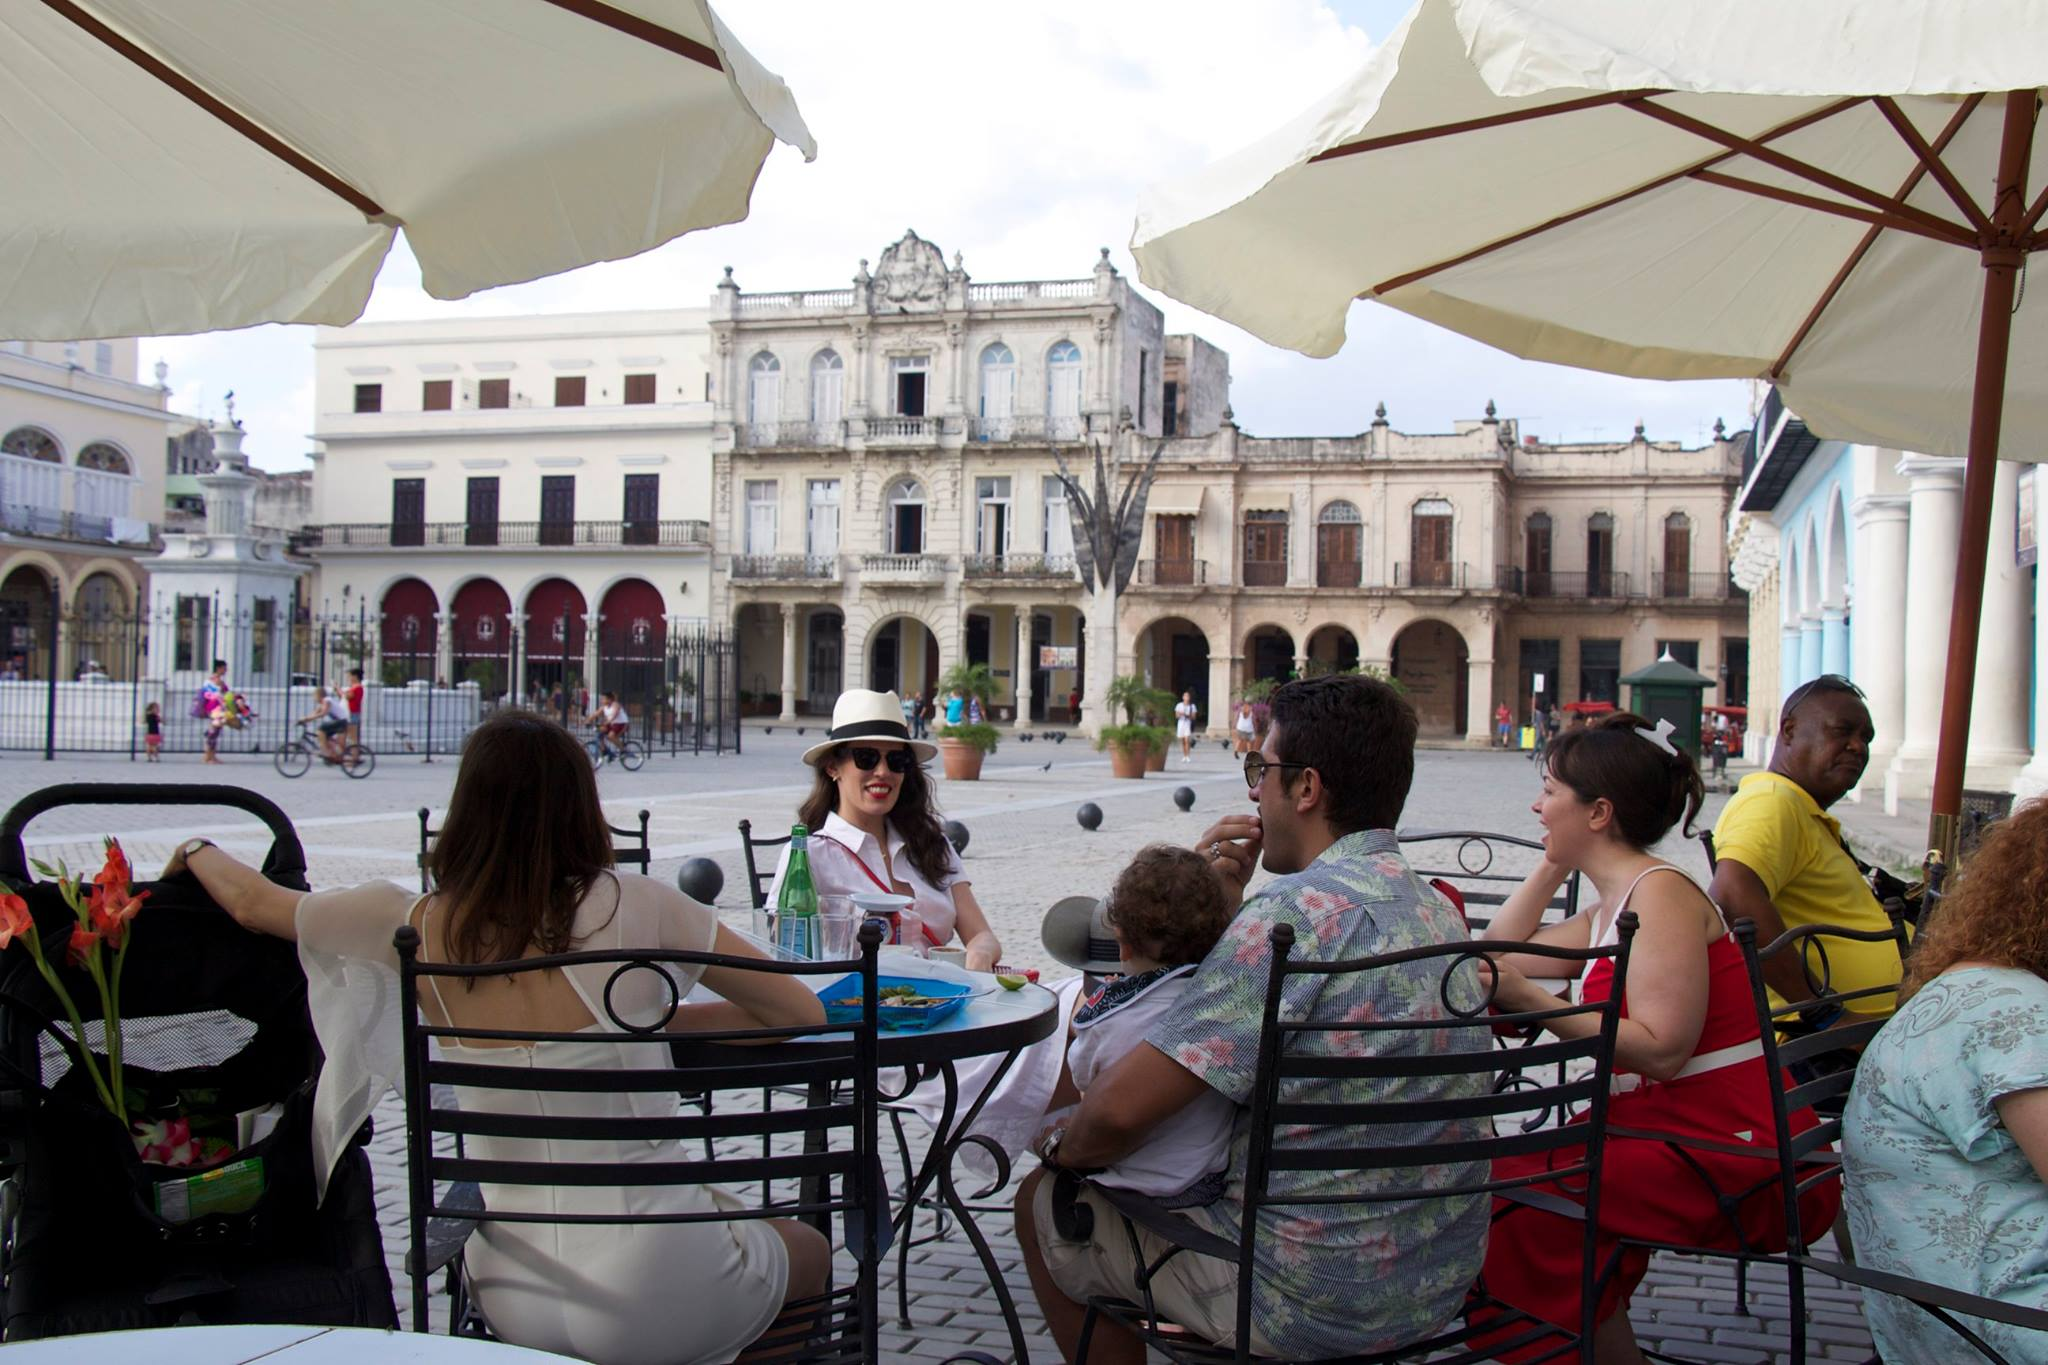 Sitting in the squares of Havana gives a view into how the architectures come together. Relaxed, open and friendly.